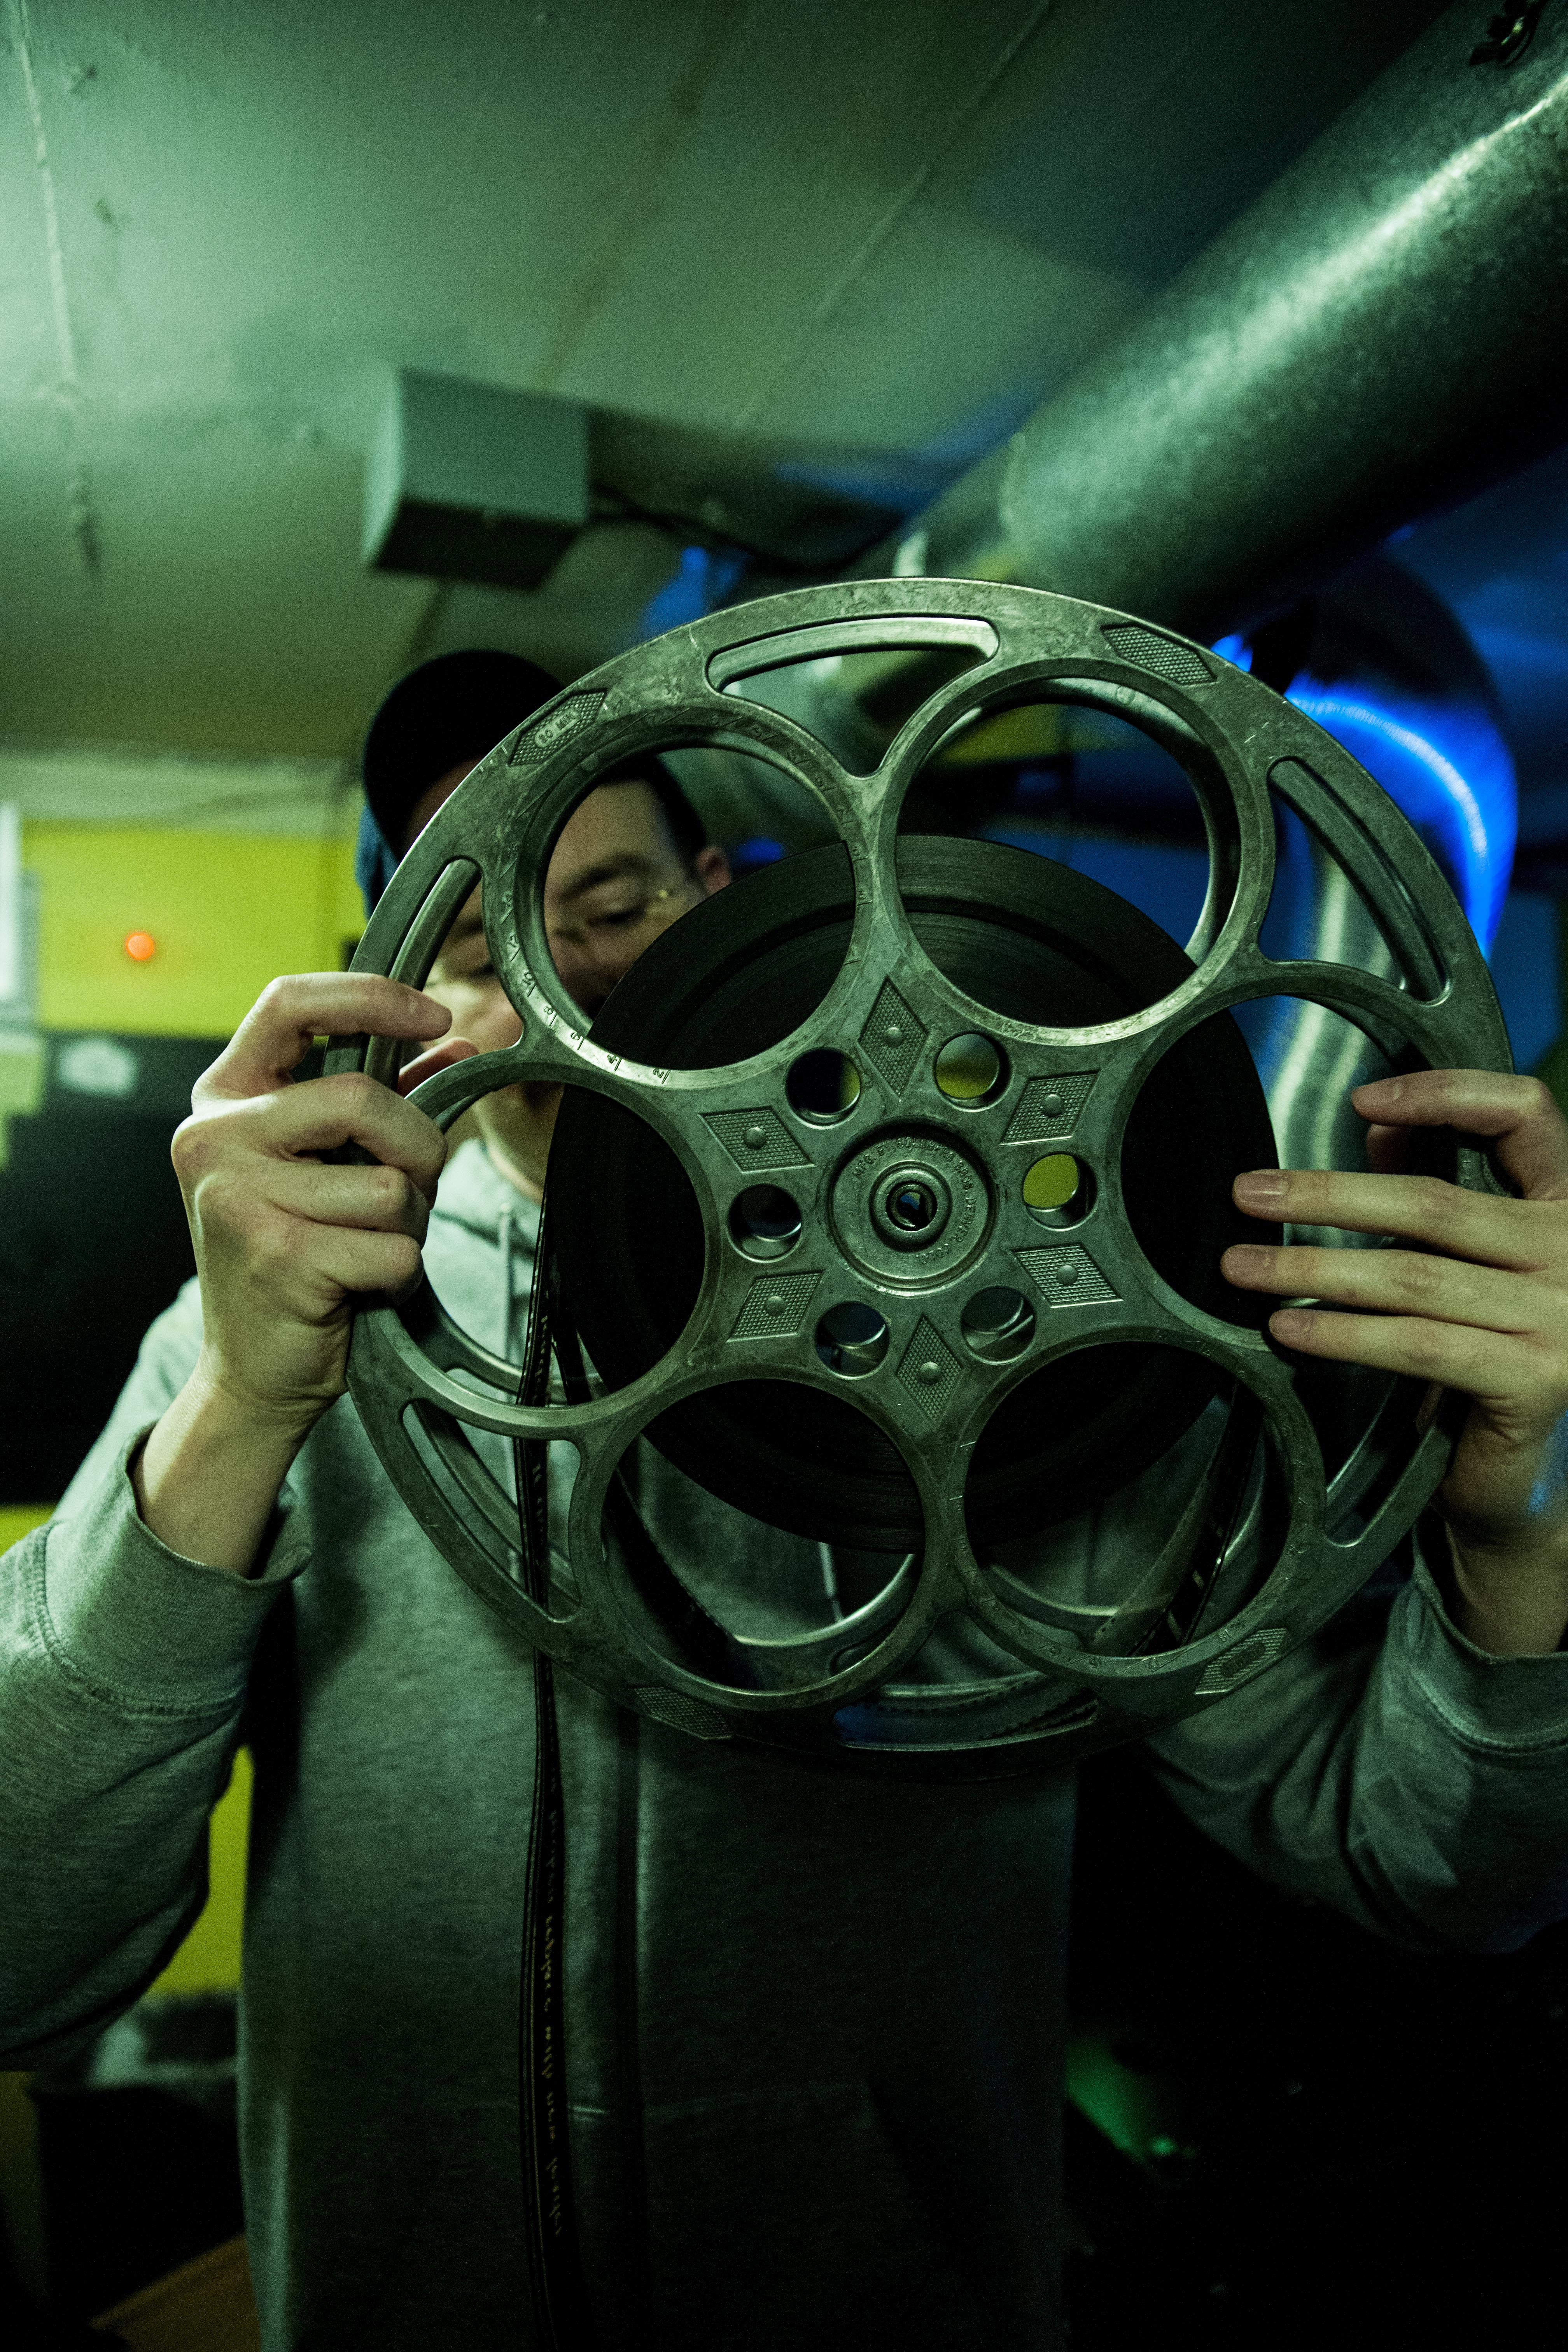 John Nagelschmidt Jr. holding one of the film reels that would have been used with their old projection system.